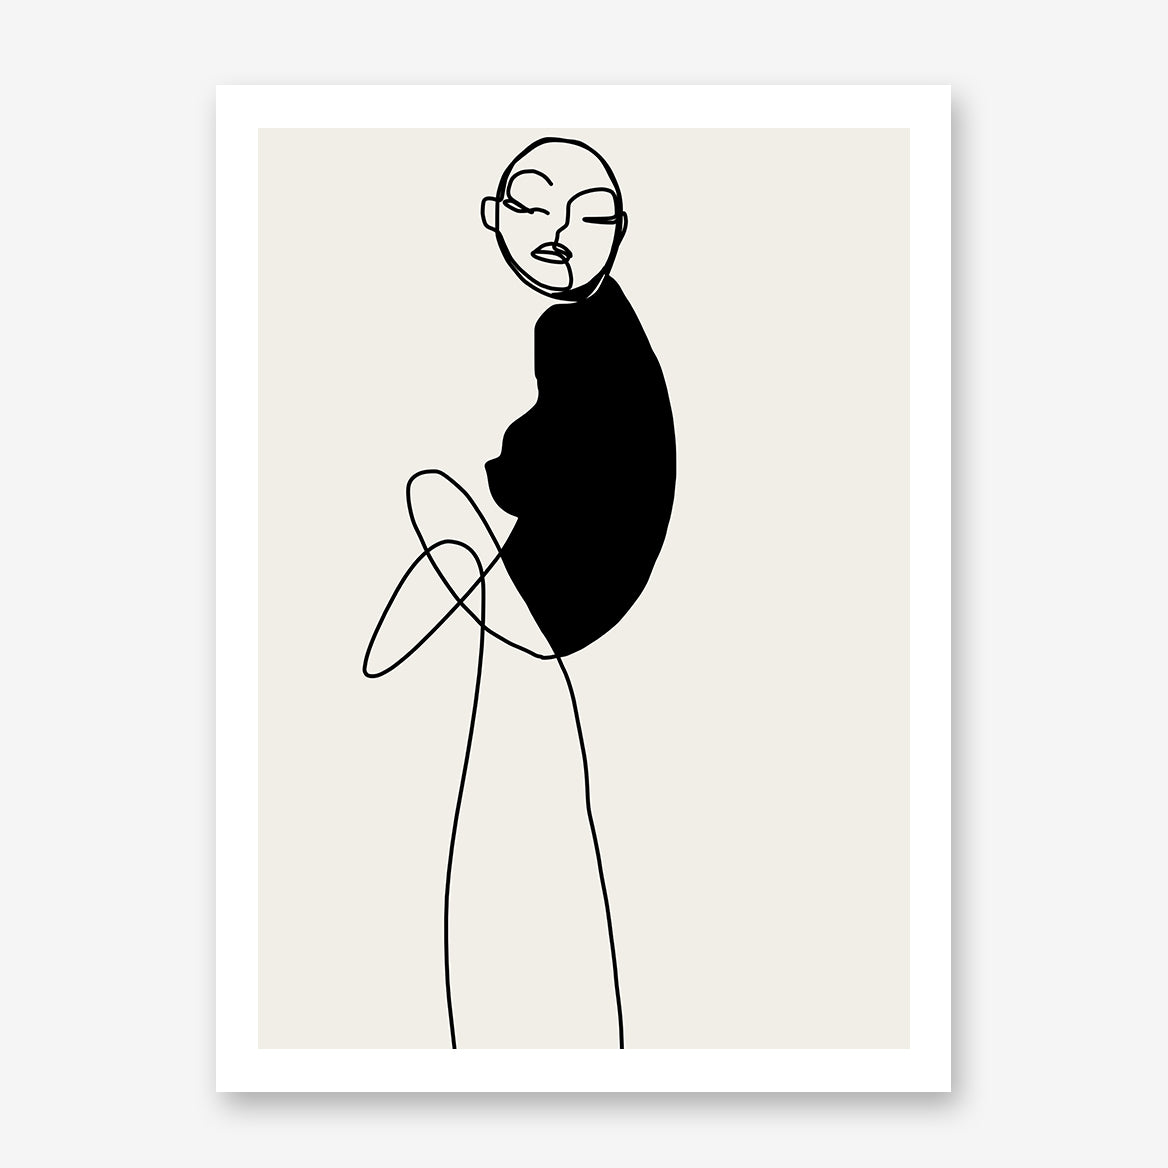 Abstract line art poster print by Sophia Novosel, with a woman in black and grey